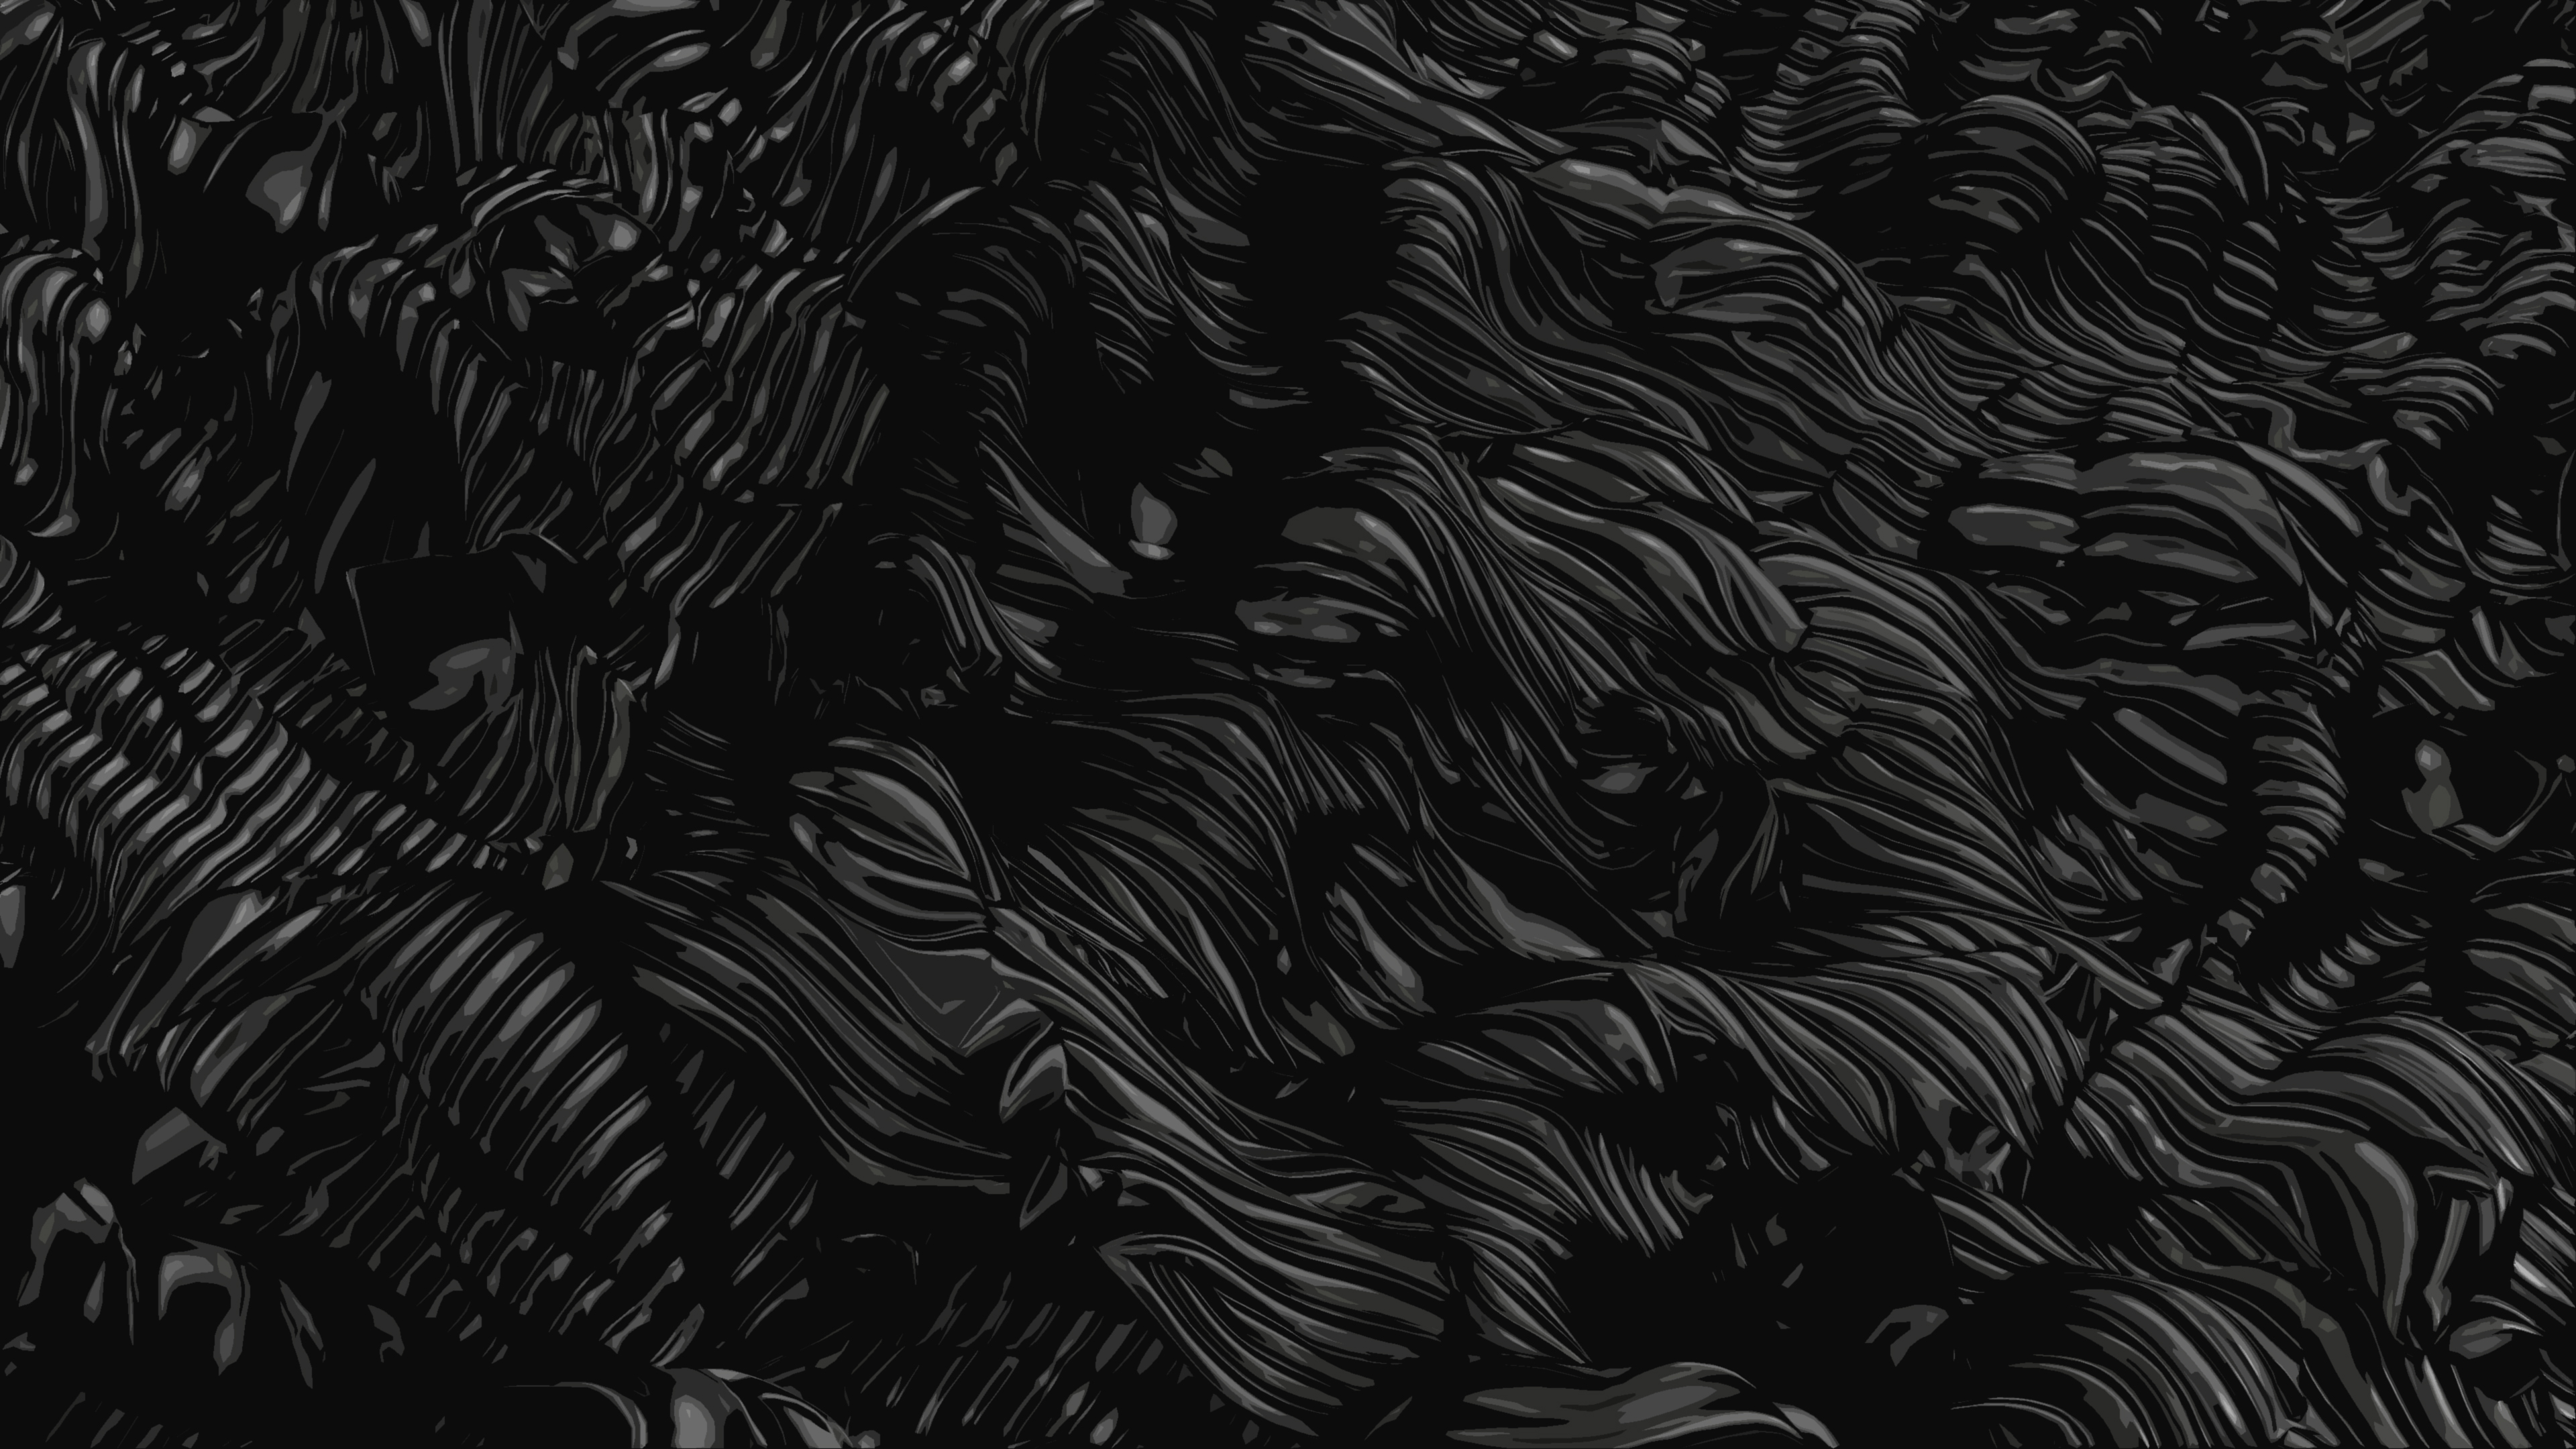 Dark Abstract Wallpaper 4k Ultra Hd